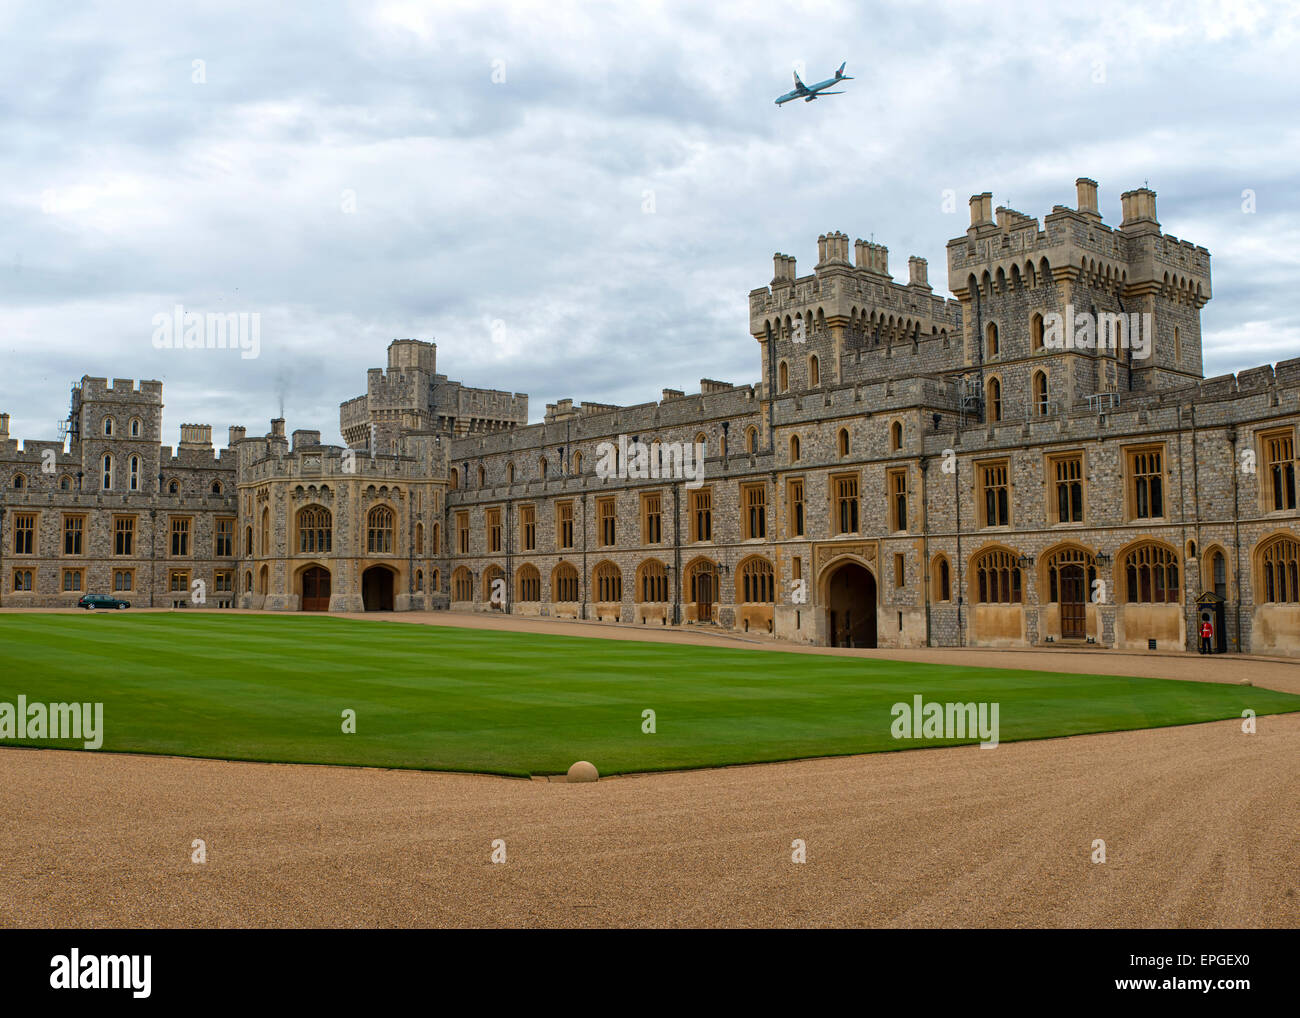 State Apartments at Windsor Castle, UK - Stock Image